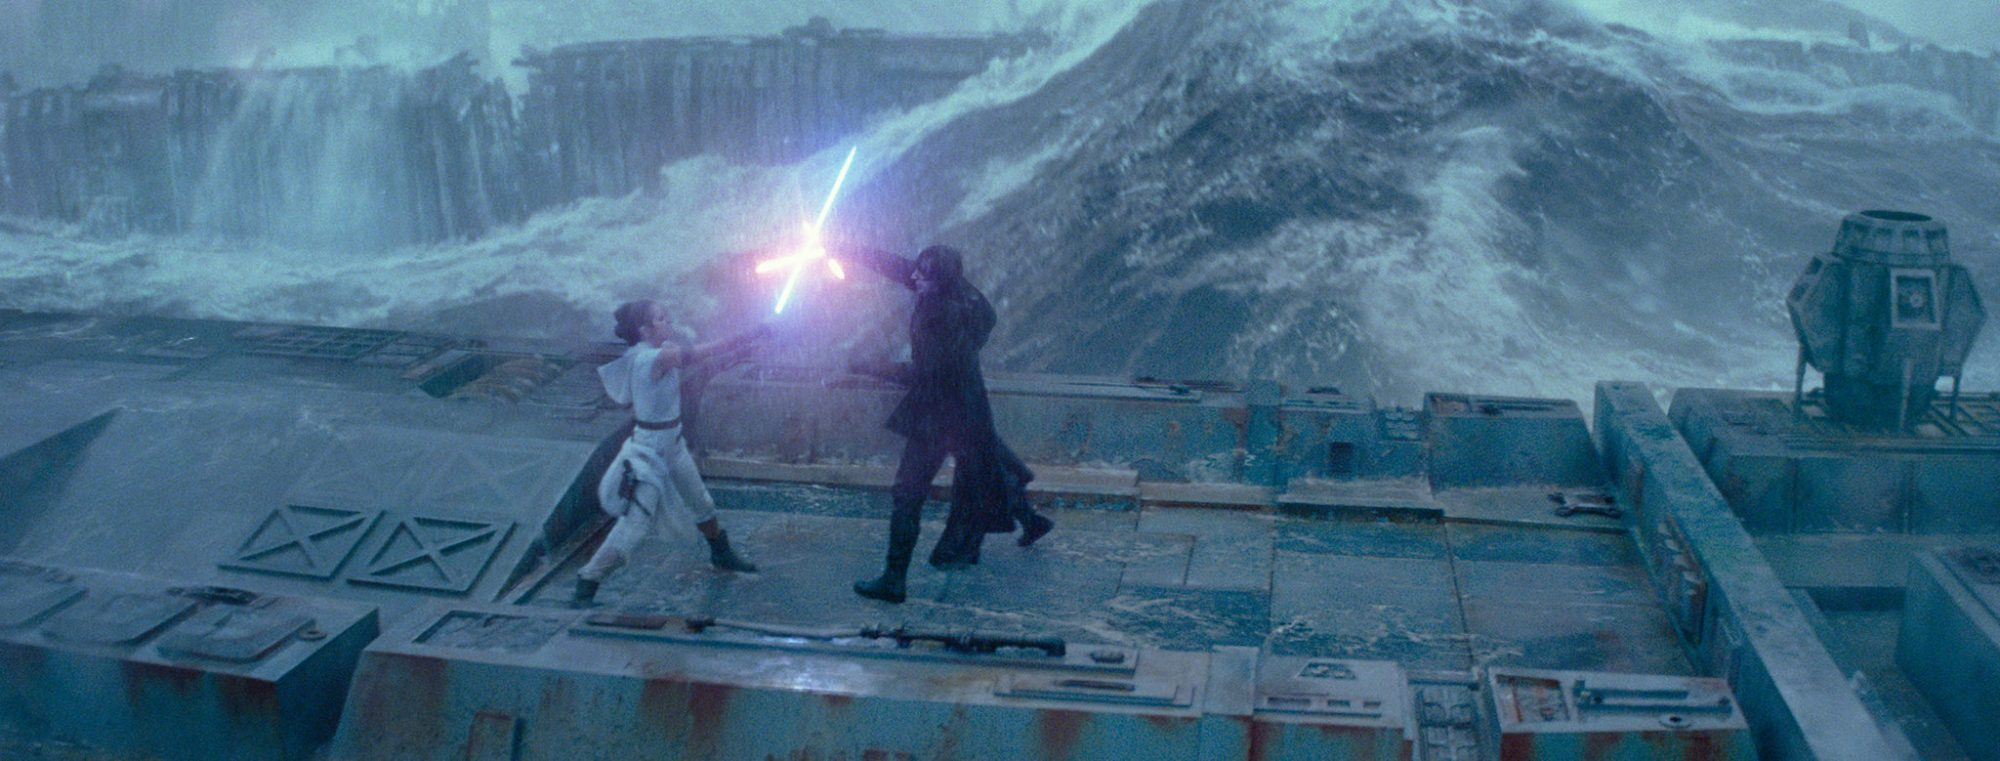 The Rise of Skywalker - duel on the Death Star 2 ruins